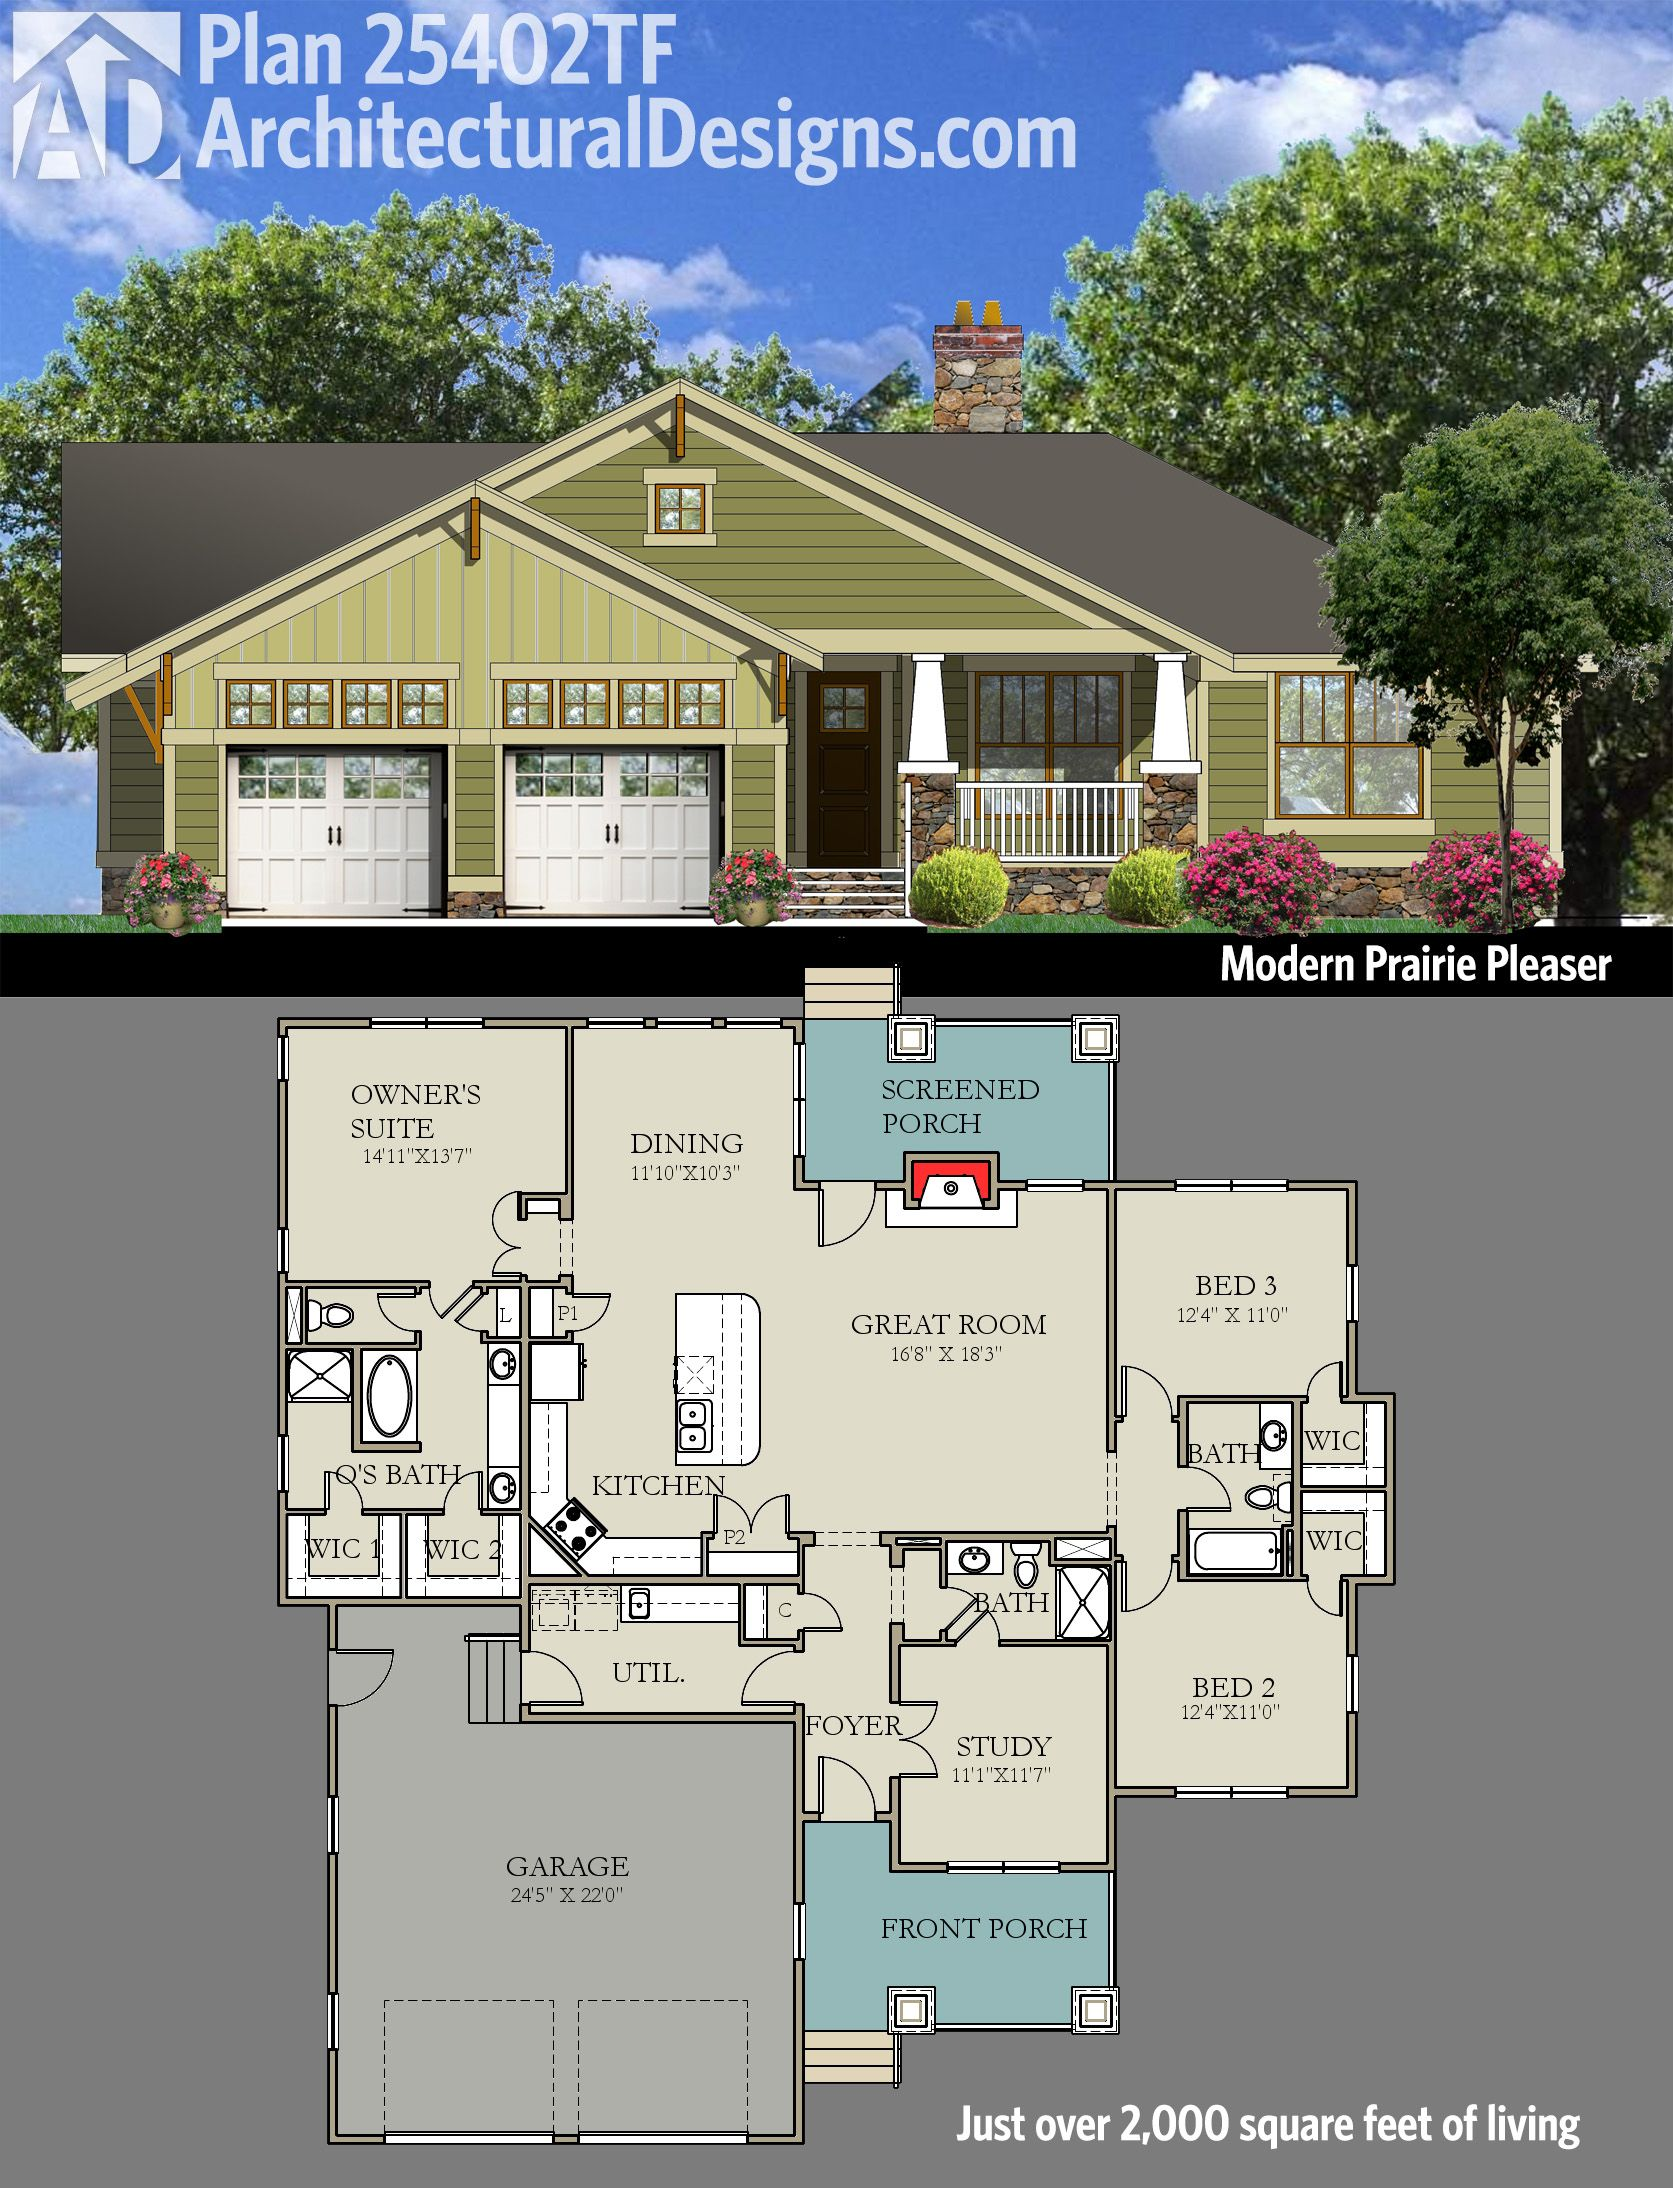 Get A Dose Of Prairie Style With Architectural Designs Bungalow House Plan 25402TF 3 Beds